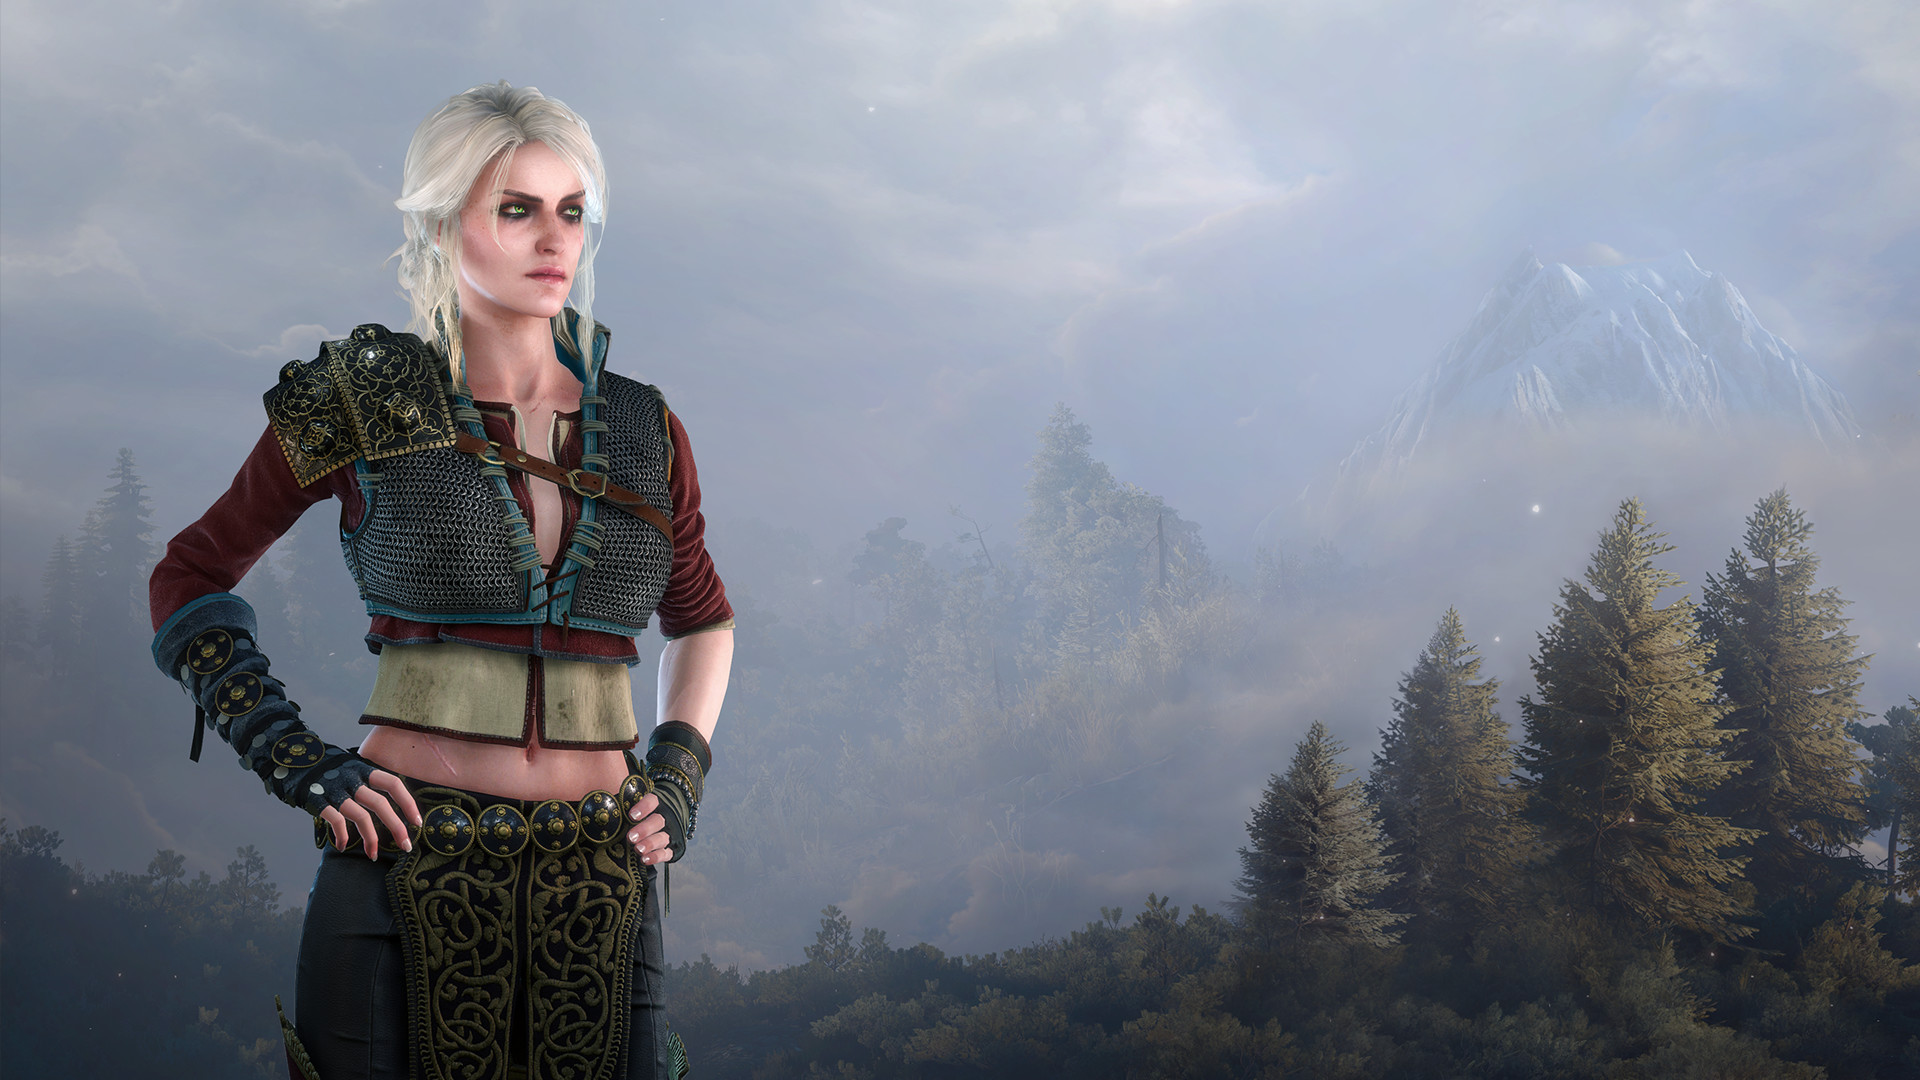 Alternative look for Ciri | Witcher Wiki | FANDOM powered by Wikia